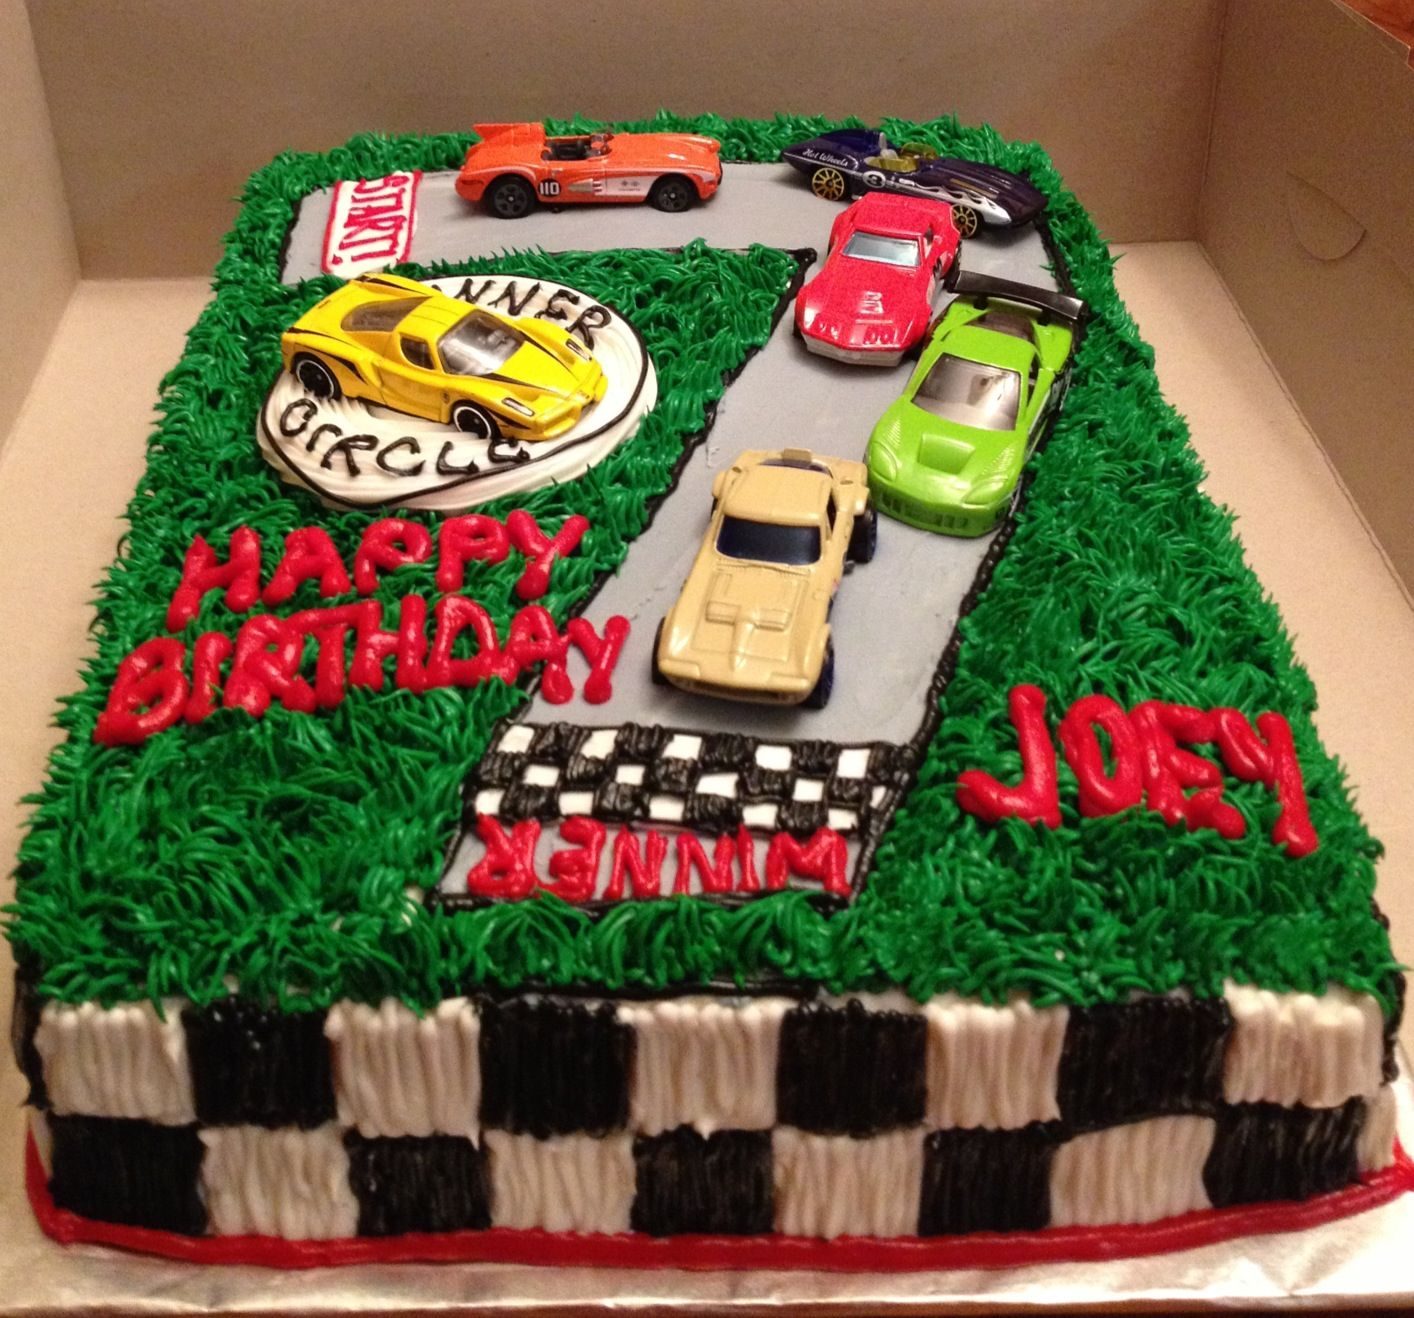 Astonishing Race Car Cake Cars Birthday Cake Cars Cake Design 7Th Birthday Funny Birthday Cards Online Elaedamsfinfo